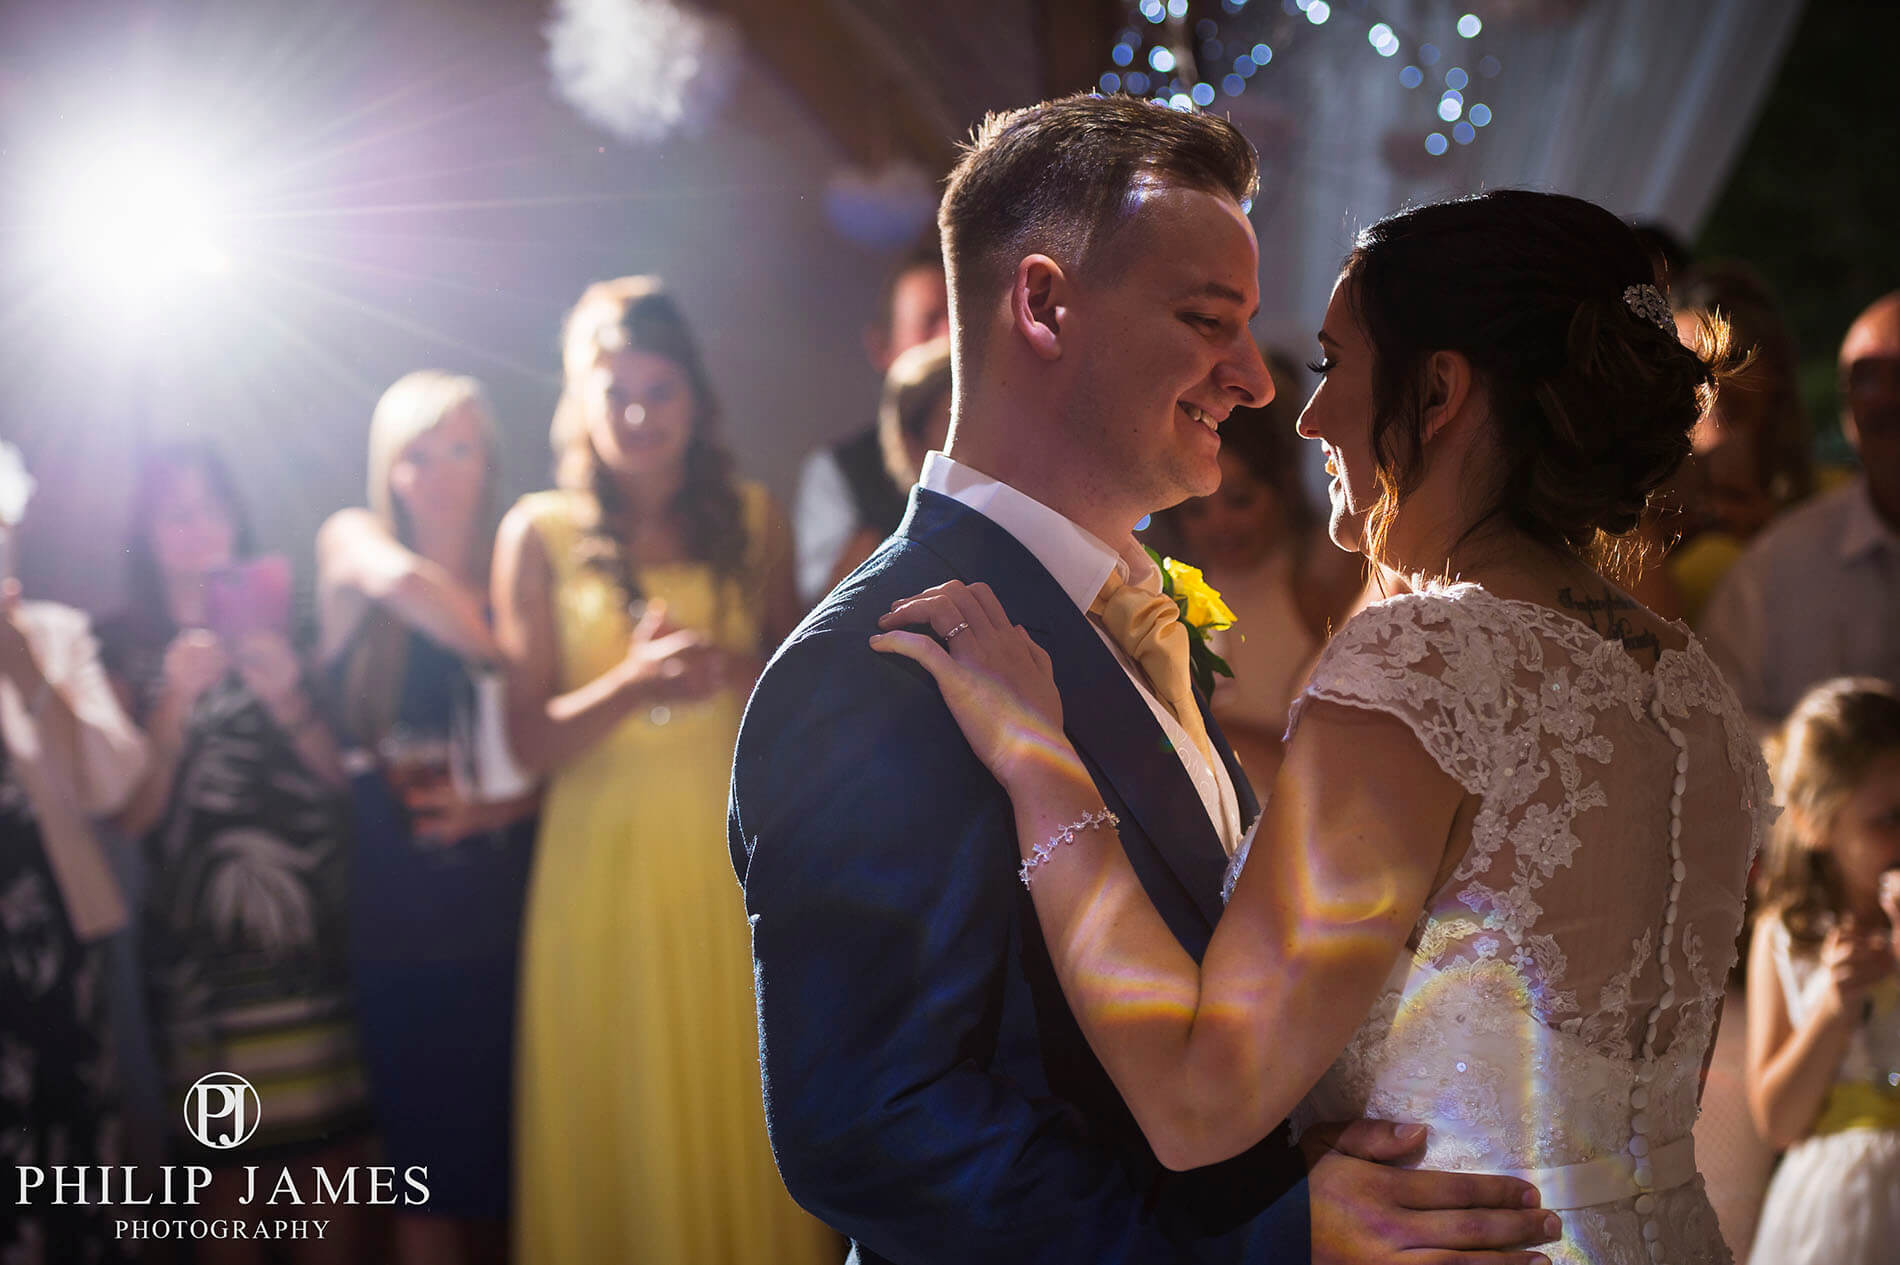 Philip James specializing in Wedding Photography Birmingham - Moments (102 of 170)